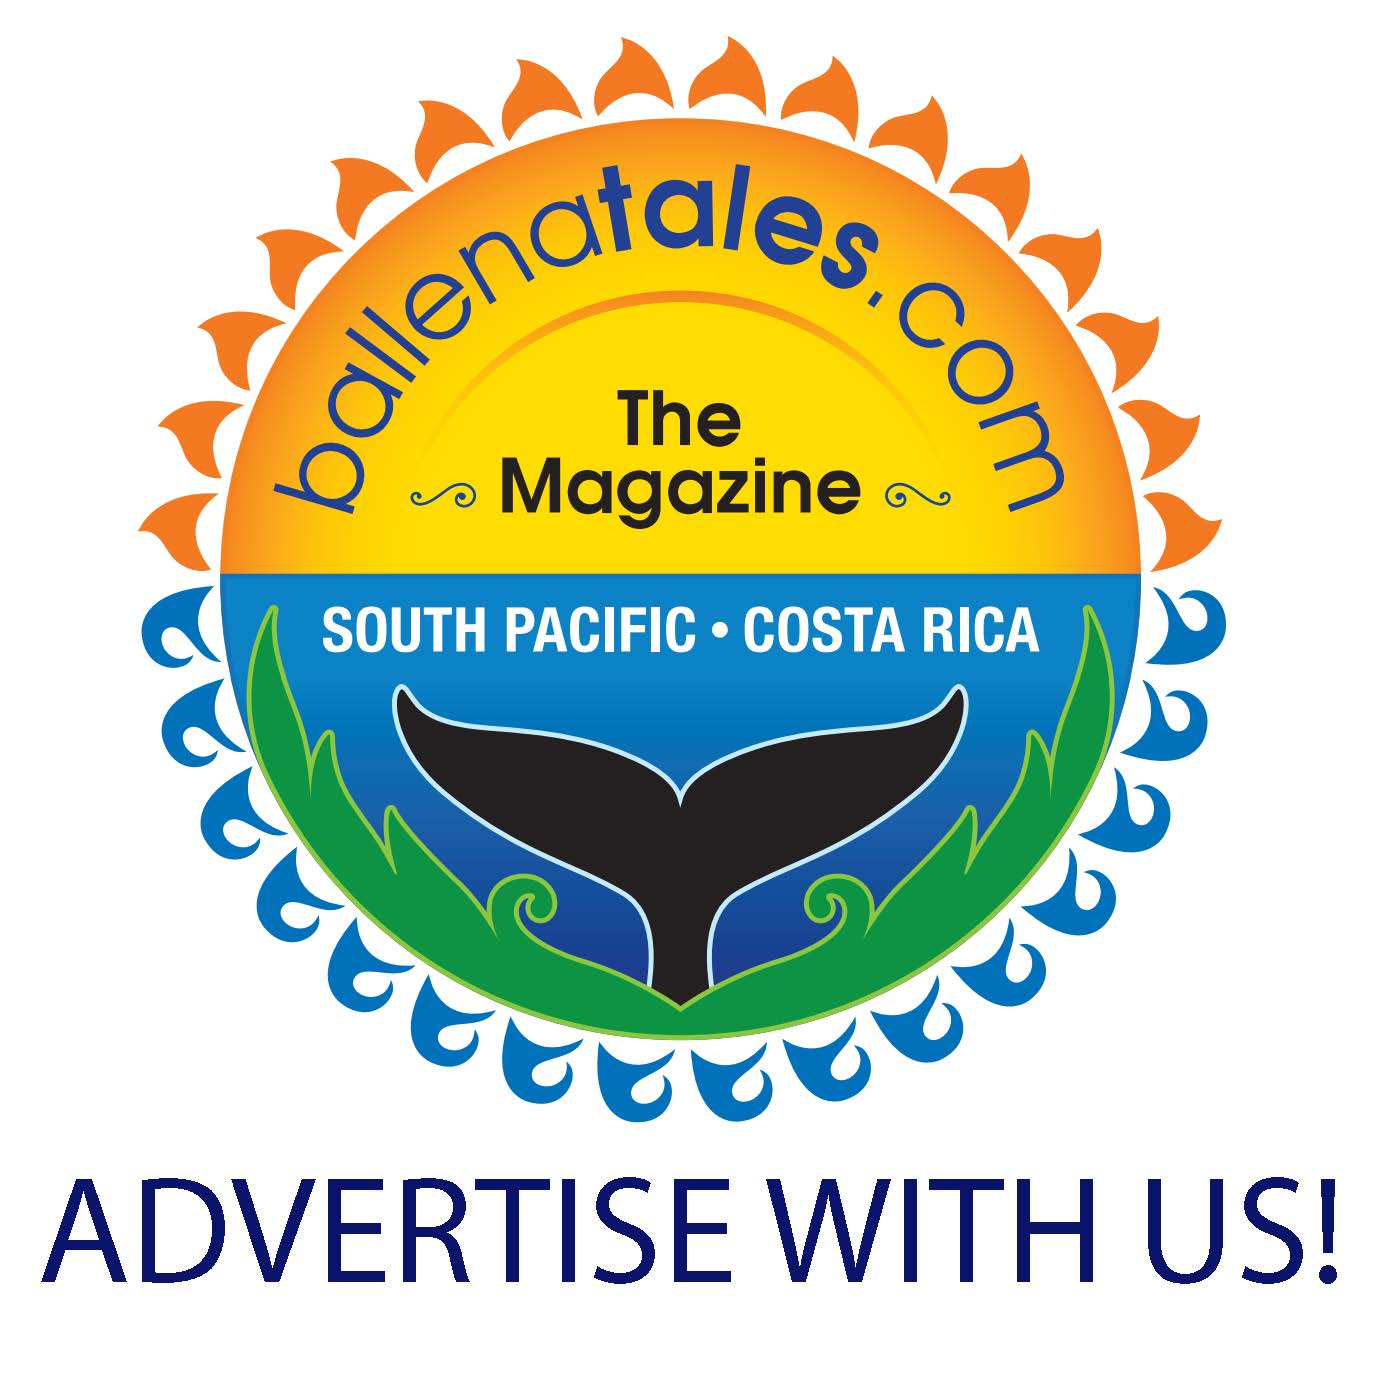 Advantages of Advertising with Ballena Tales